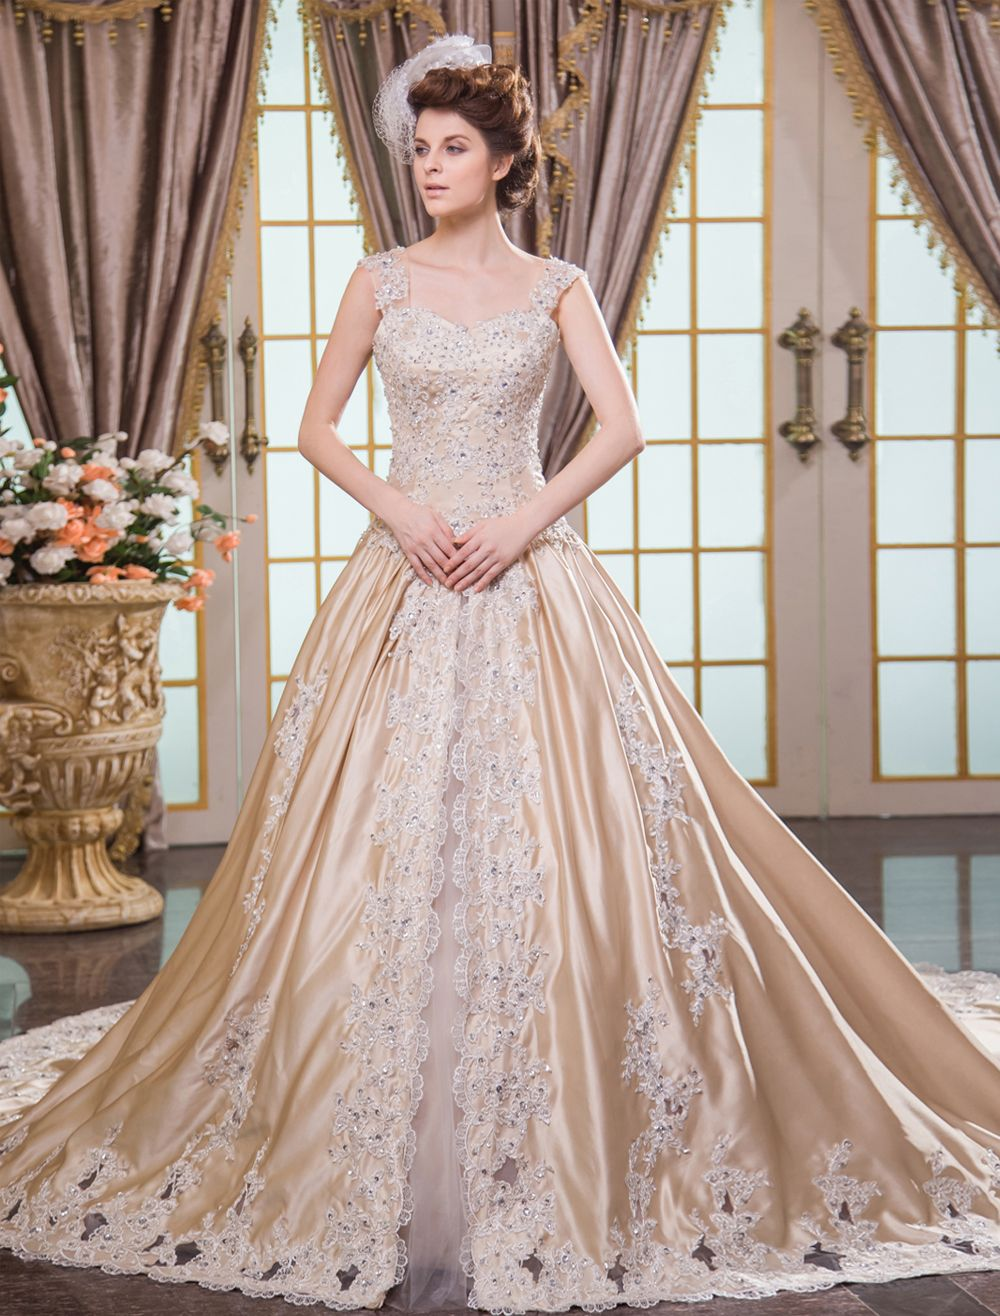 The Warmth and Elegance of a Champagne Color for Wedding Dress ...